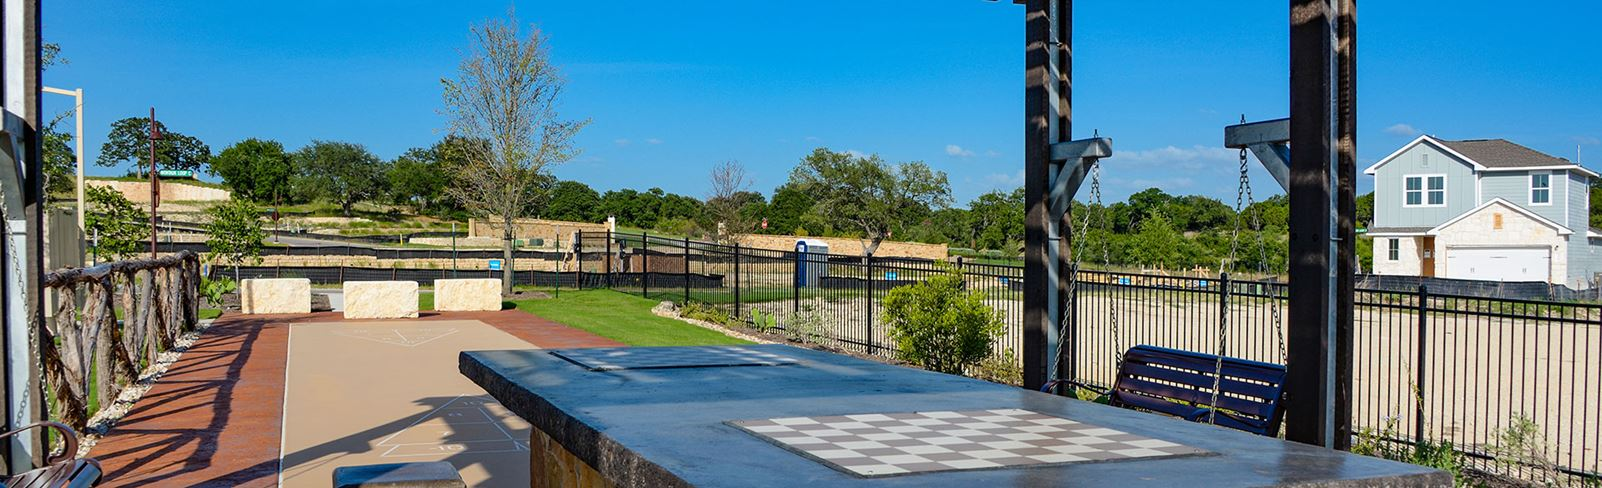 Rancho Sienna community Checkmate Park | Georgetown, TX